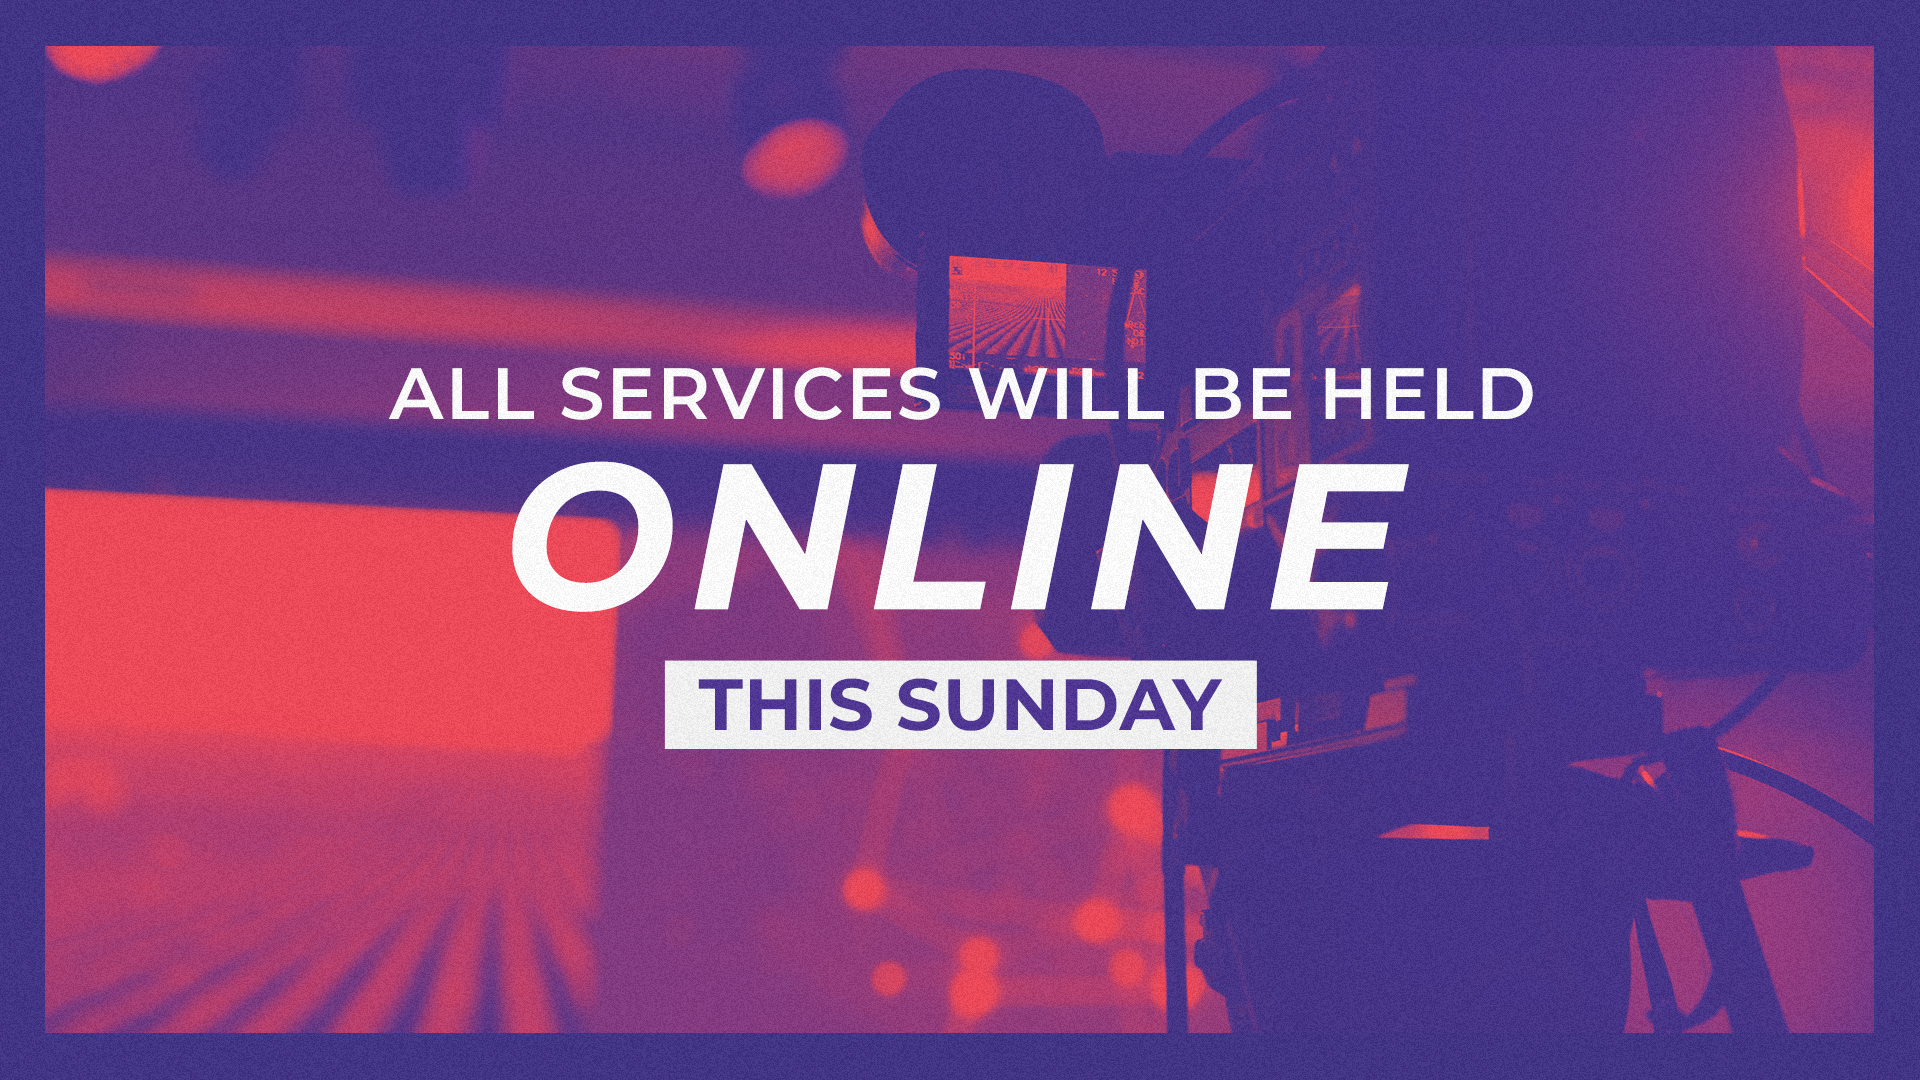 All Services will be ONLINE this Sunday